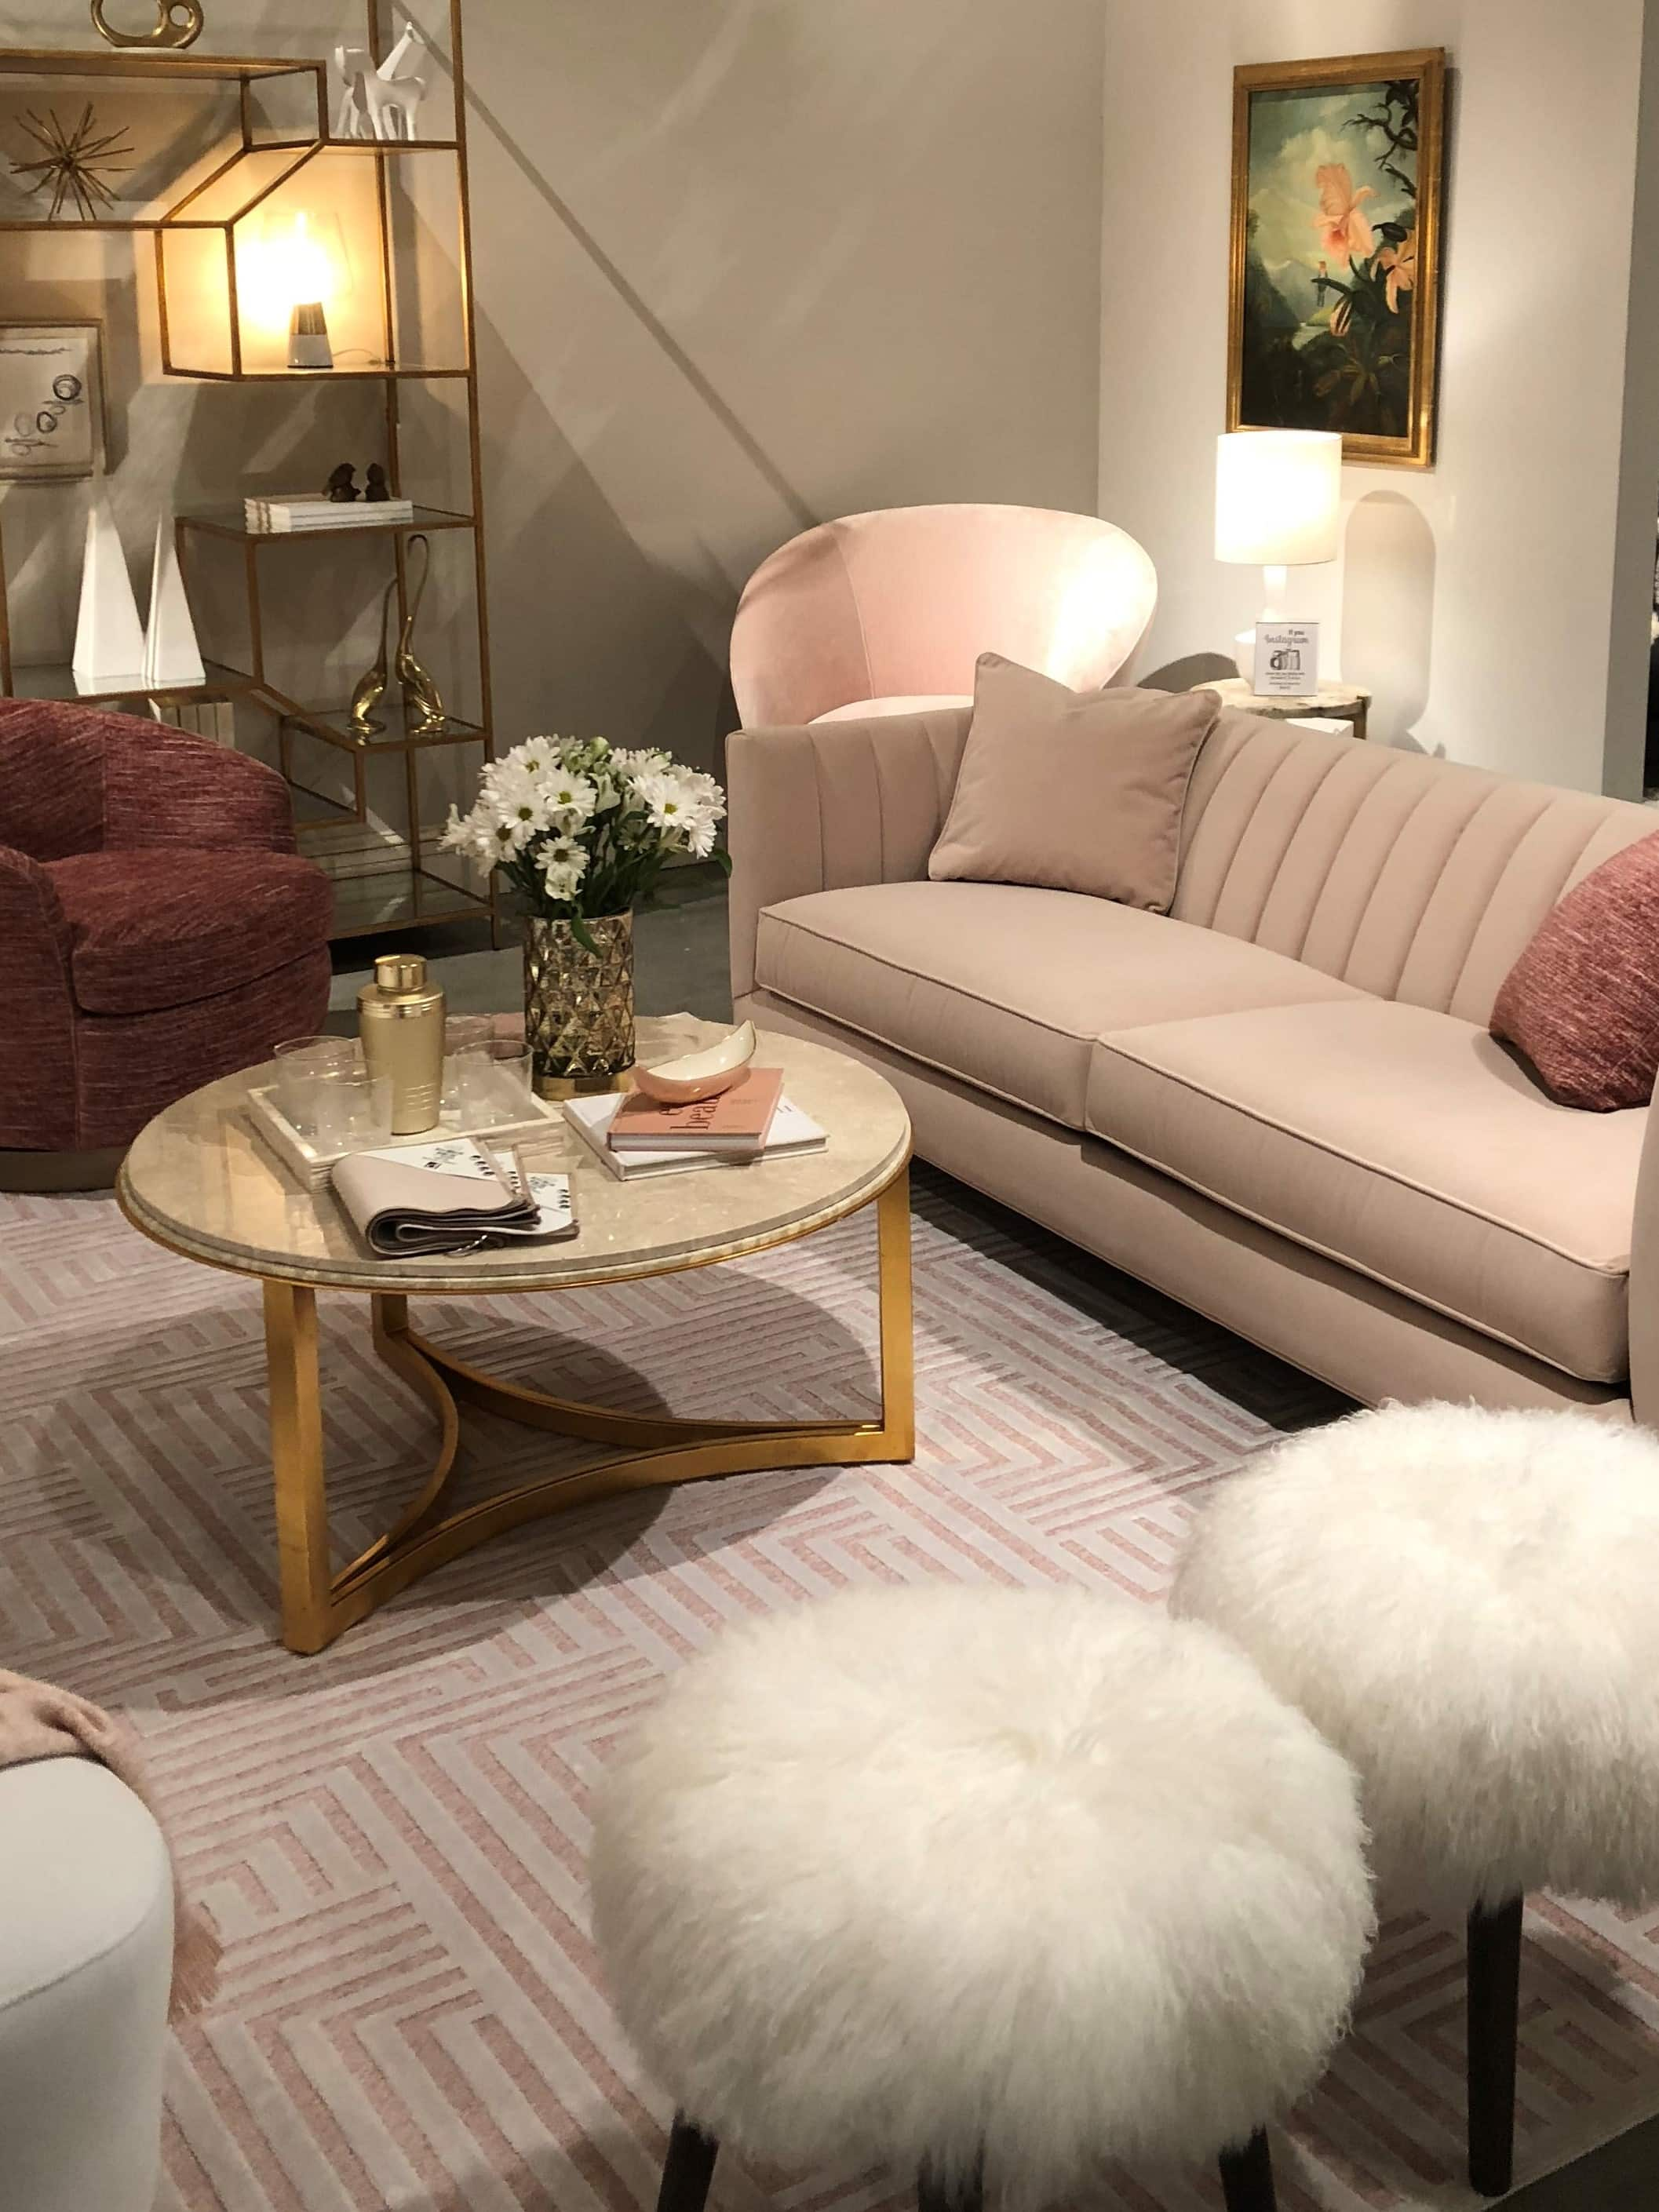 Highpoint Market - The Blush Trend